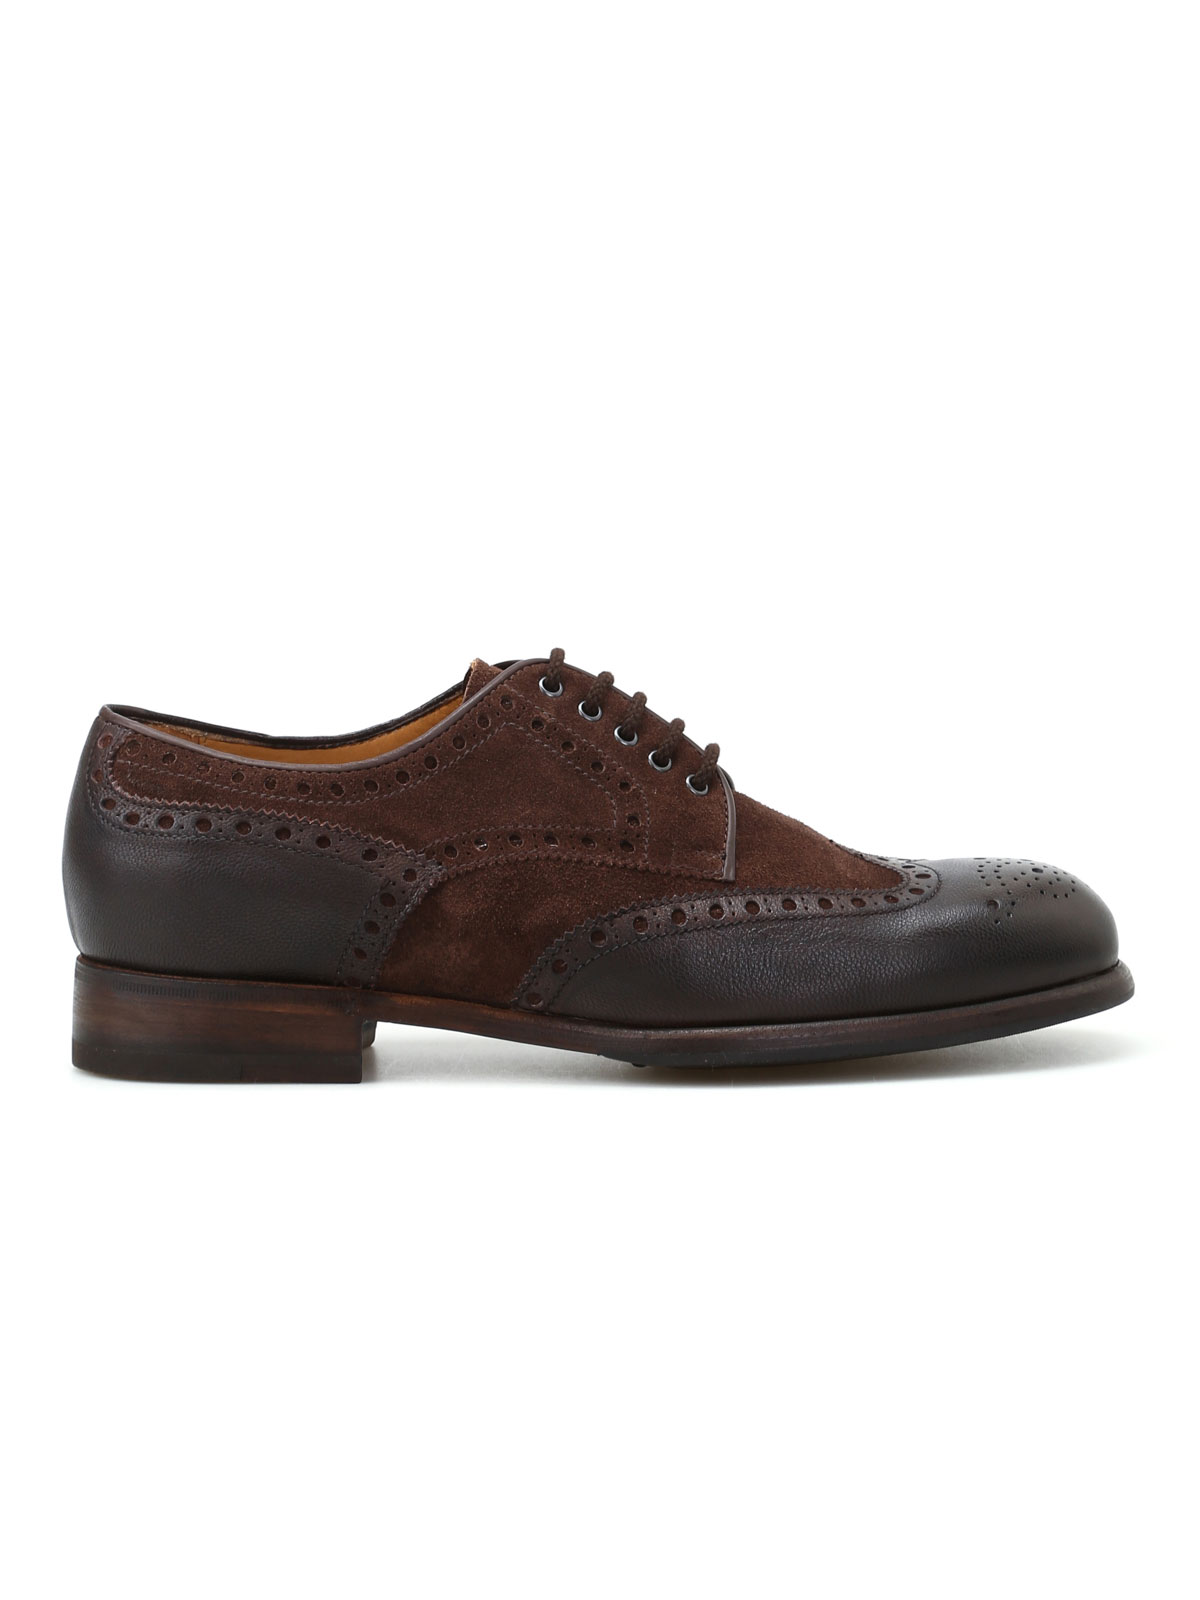 Immagine di BARRETT | FOOTWEAR Derby brogue in camoscio e pelle